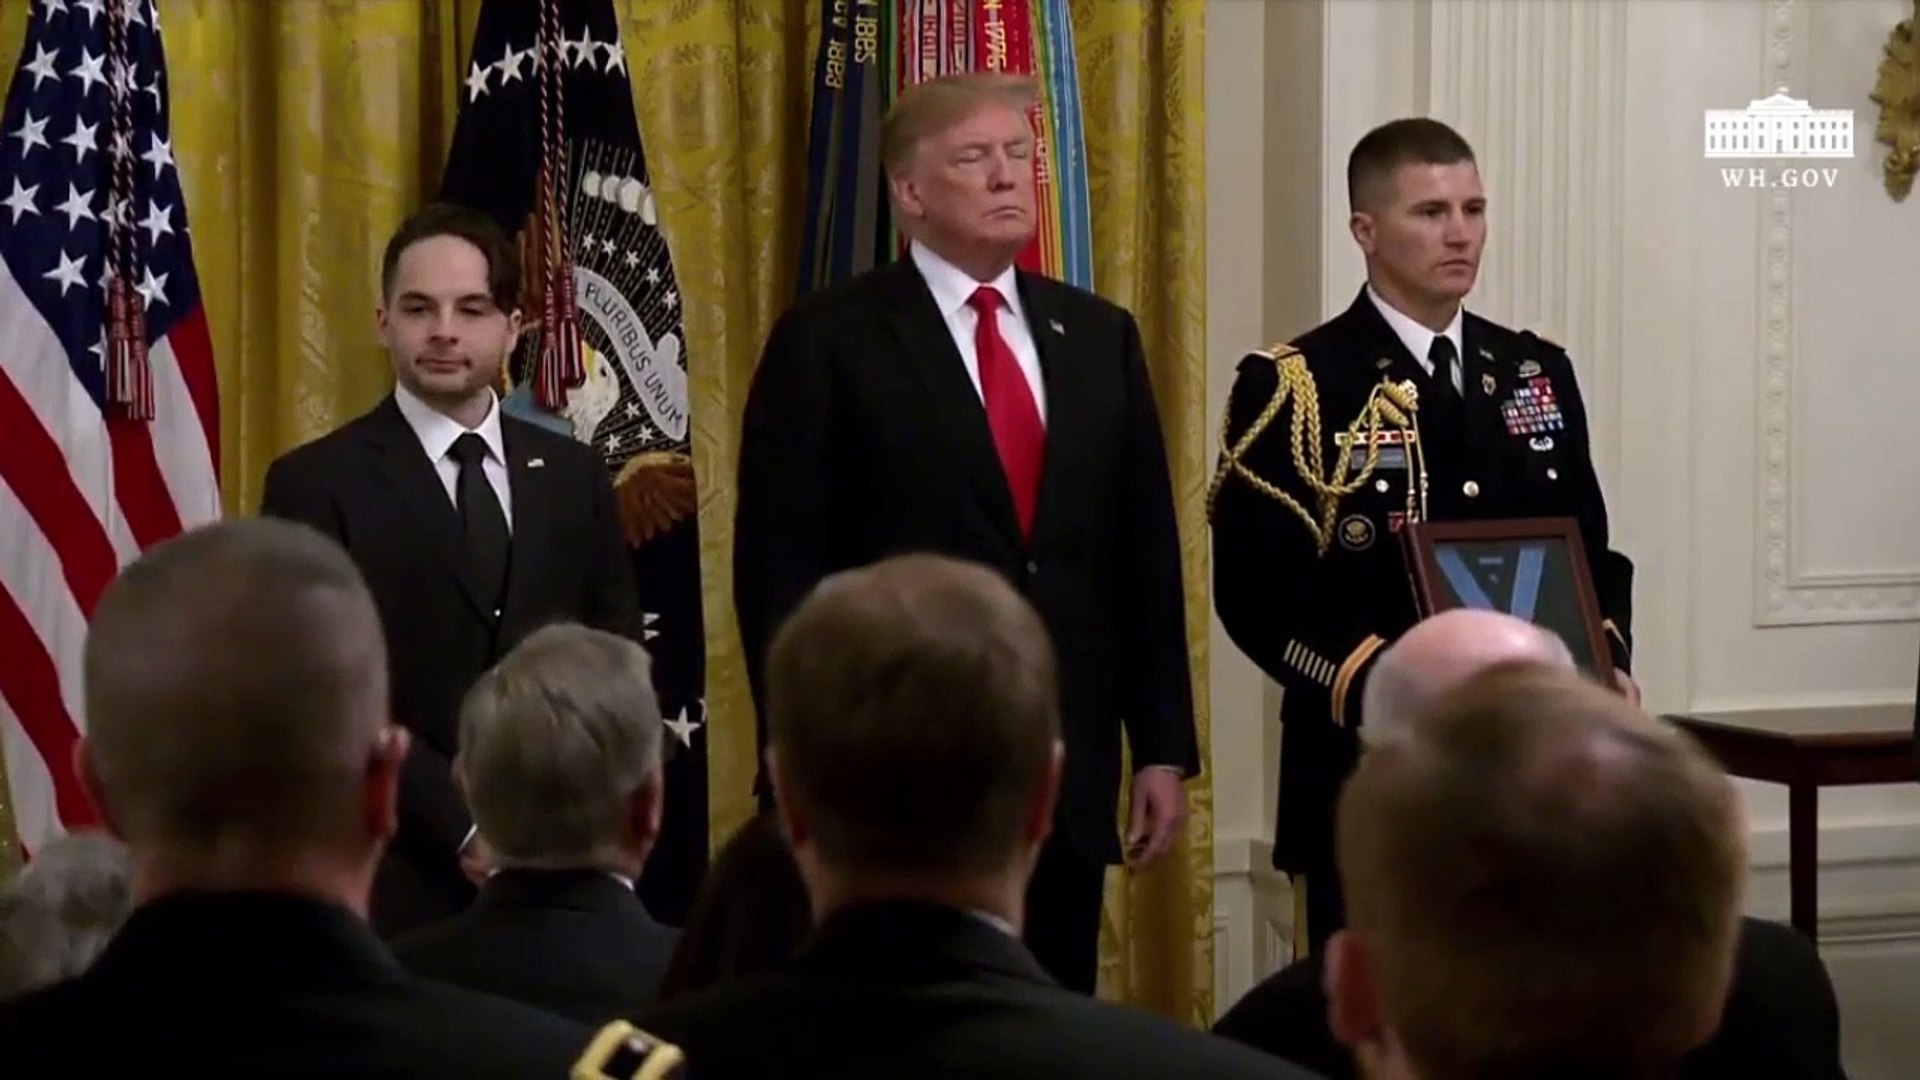 Trump Presents Medal Of Honor To Family Of Iraq War Hero